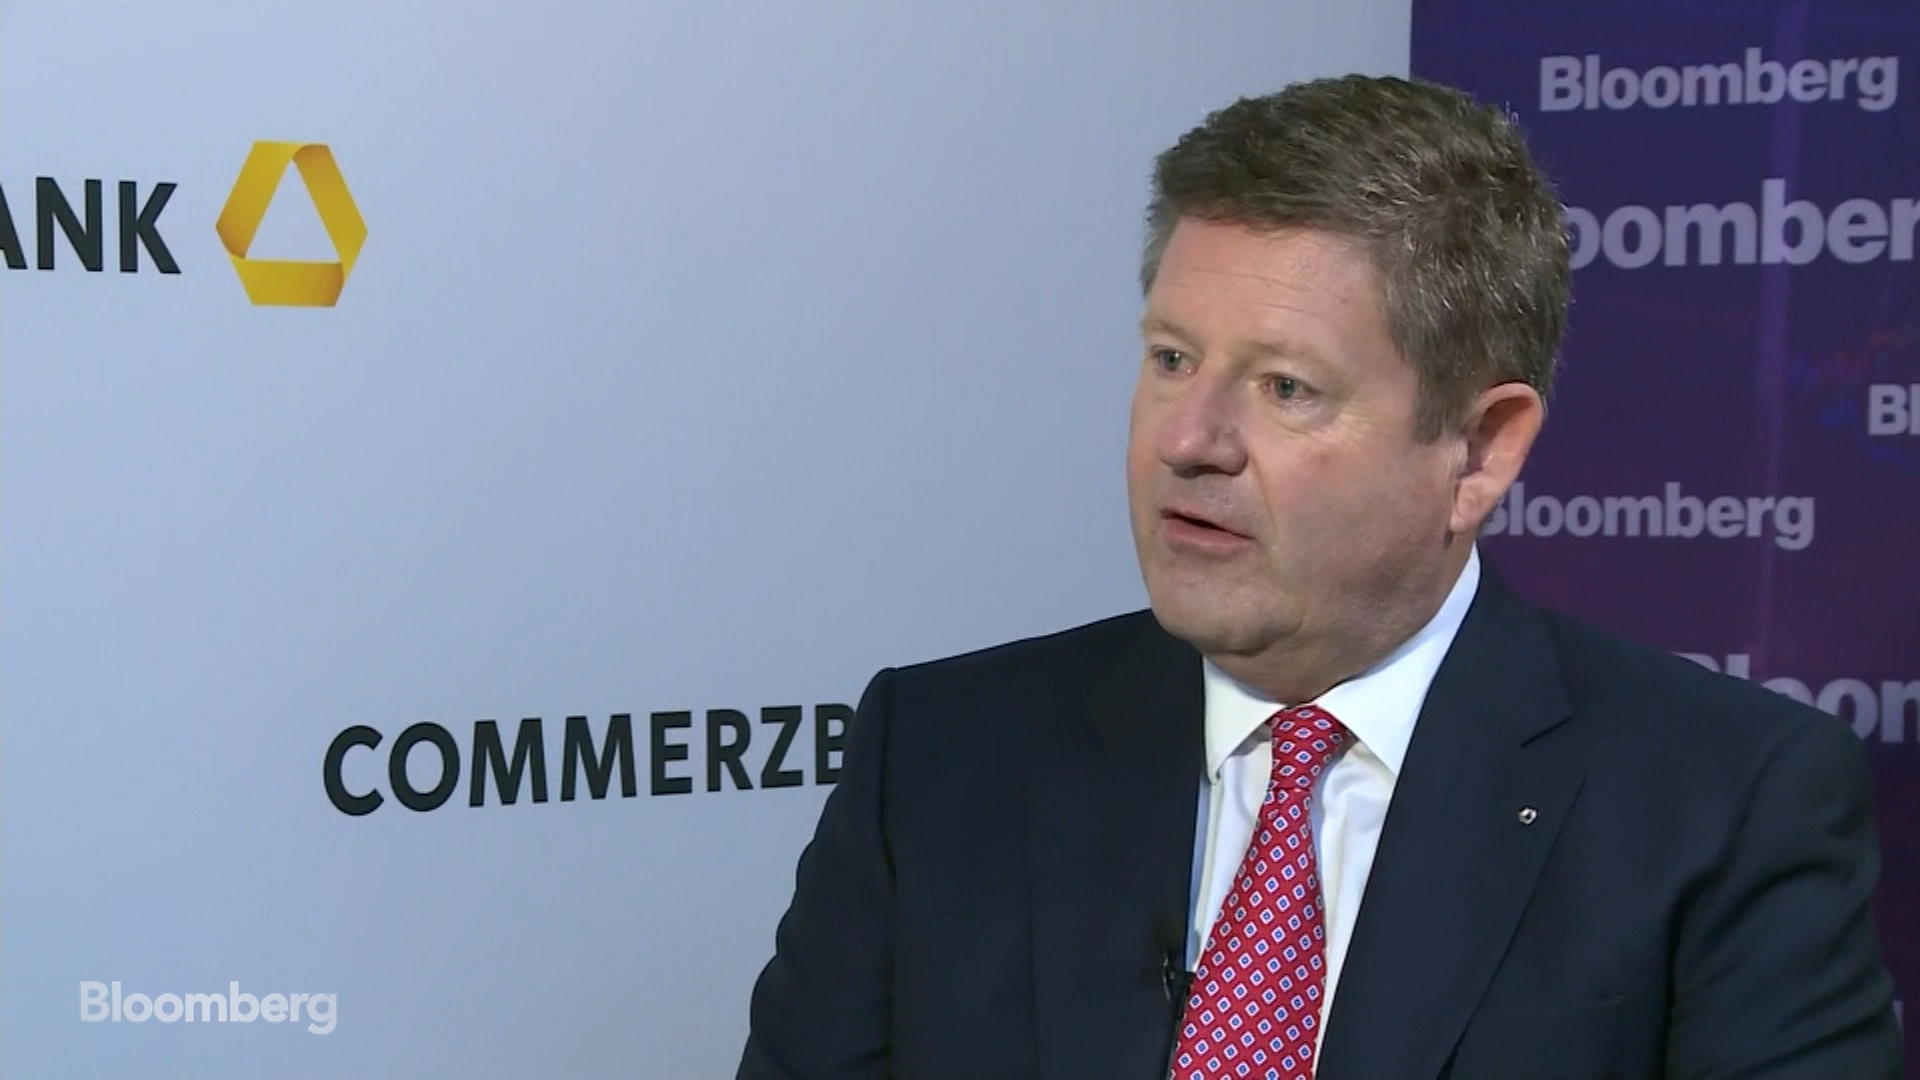 Stephan Engels, CFO of Commerzbank, on Strategy, Profit, Market Conditions, Rates, German Economy